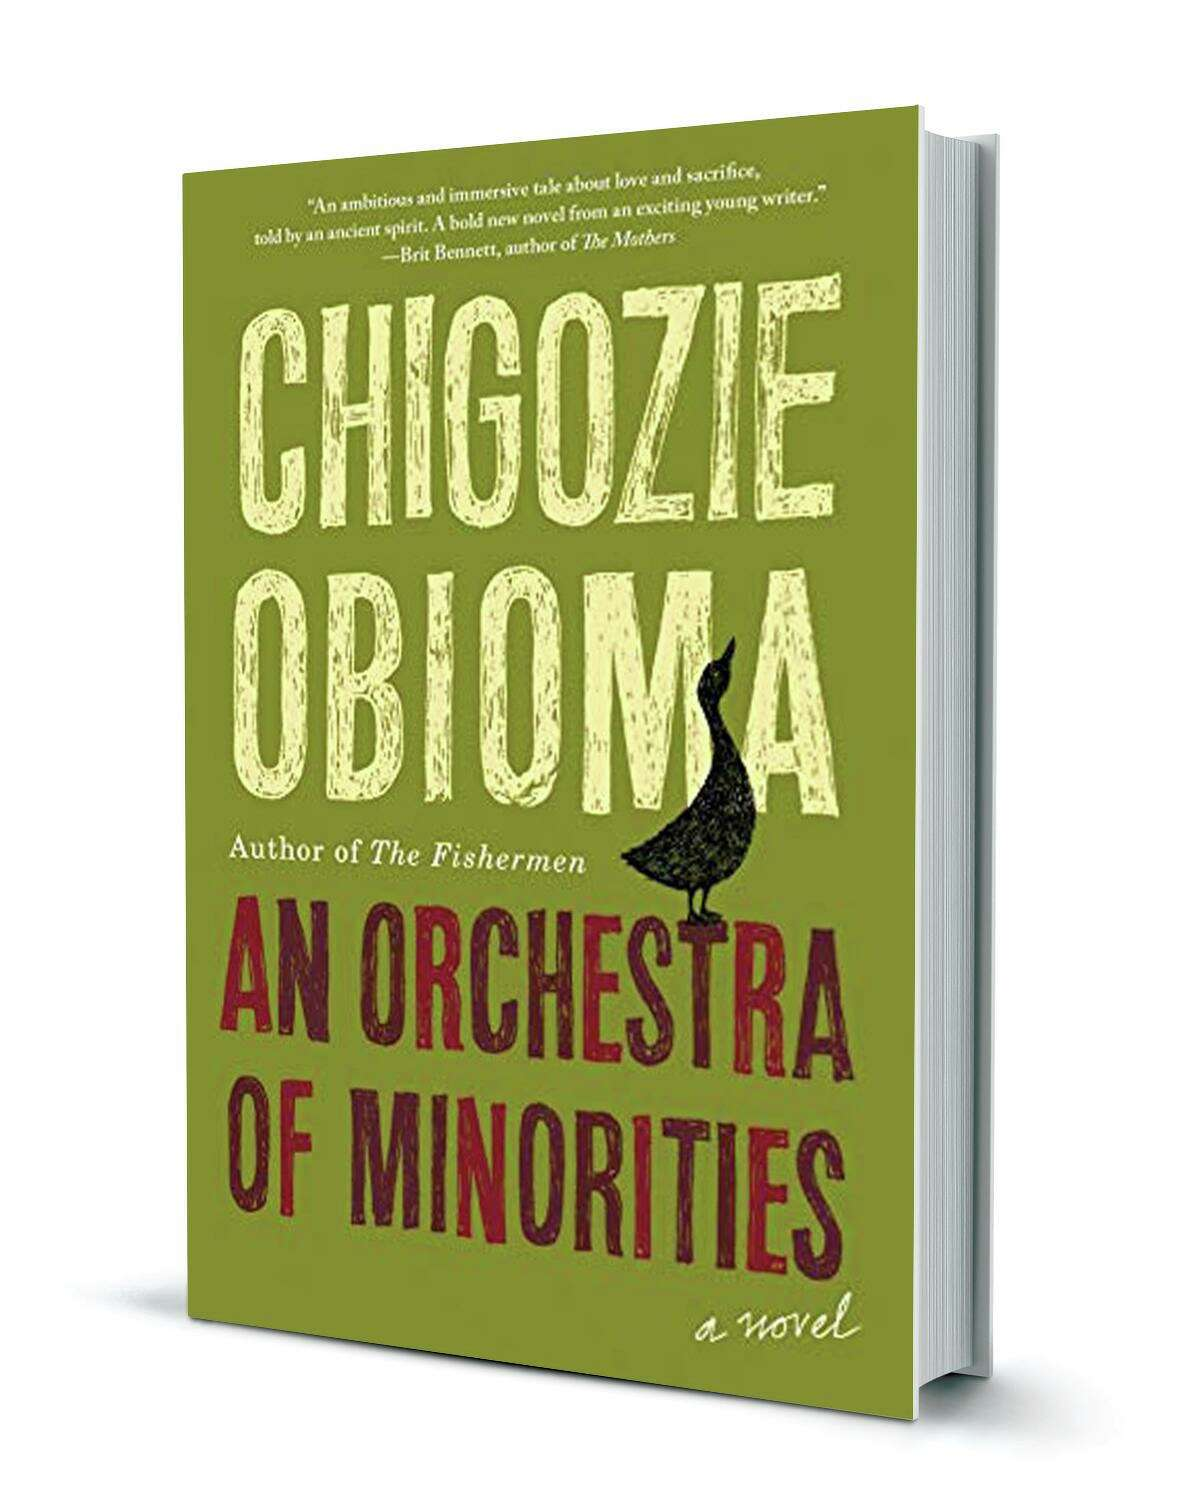 Author Chigozie Obioma published his second novel, An Orchestra of Minorities, in 2019